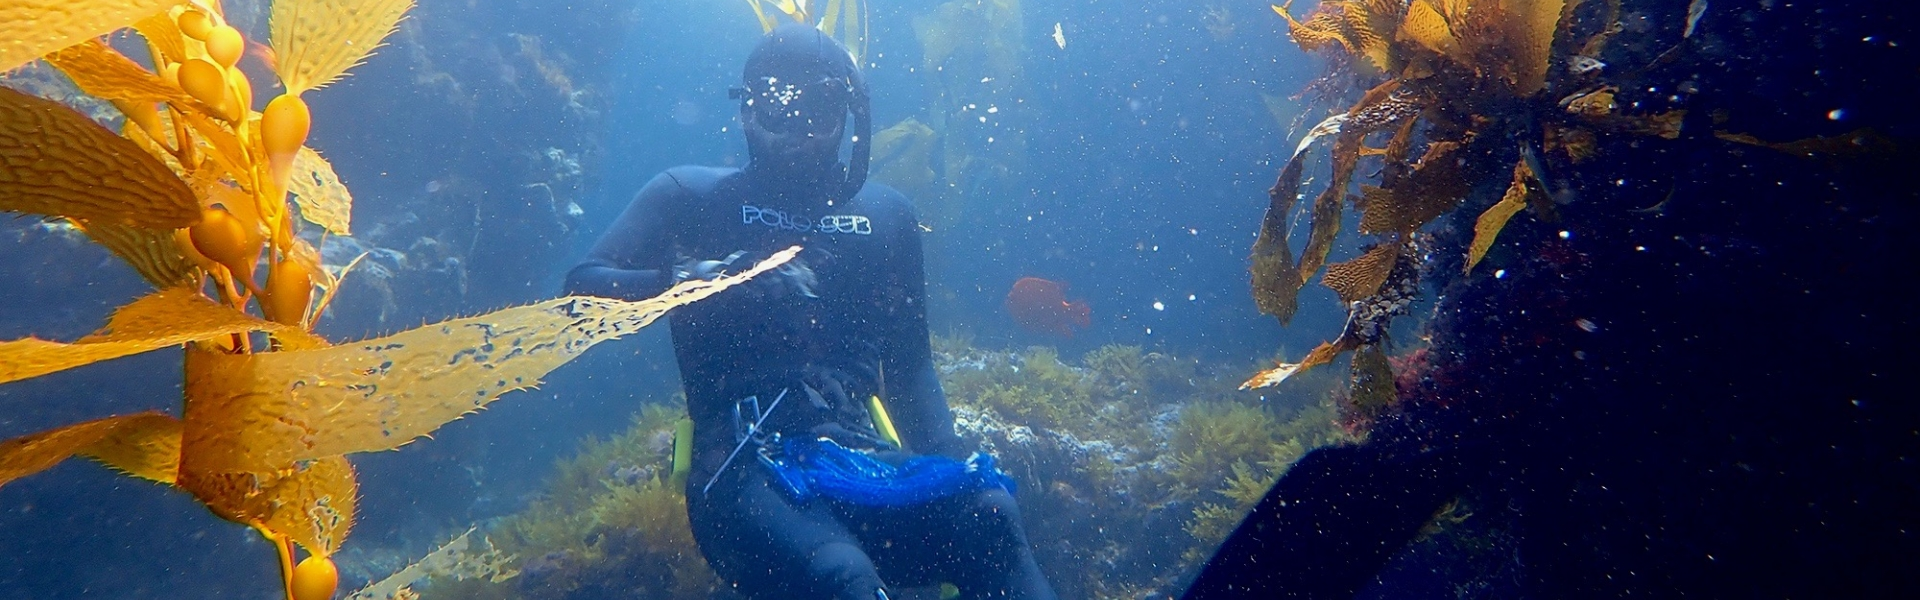 Scuba diver in a kelp forest